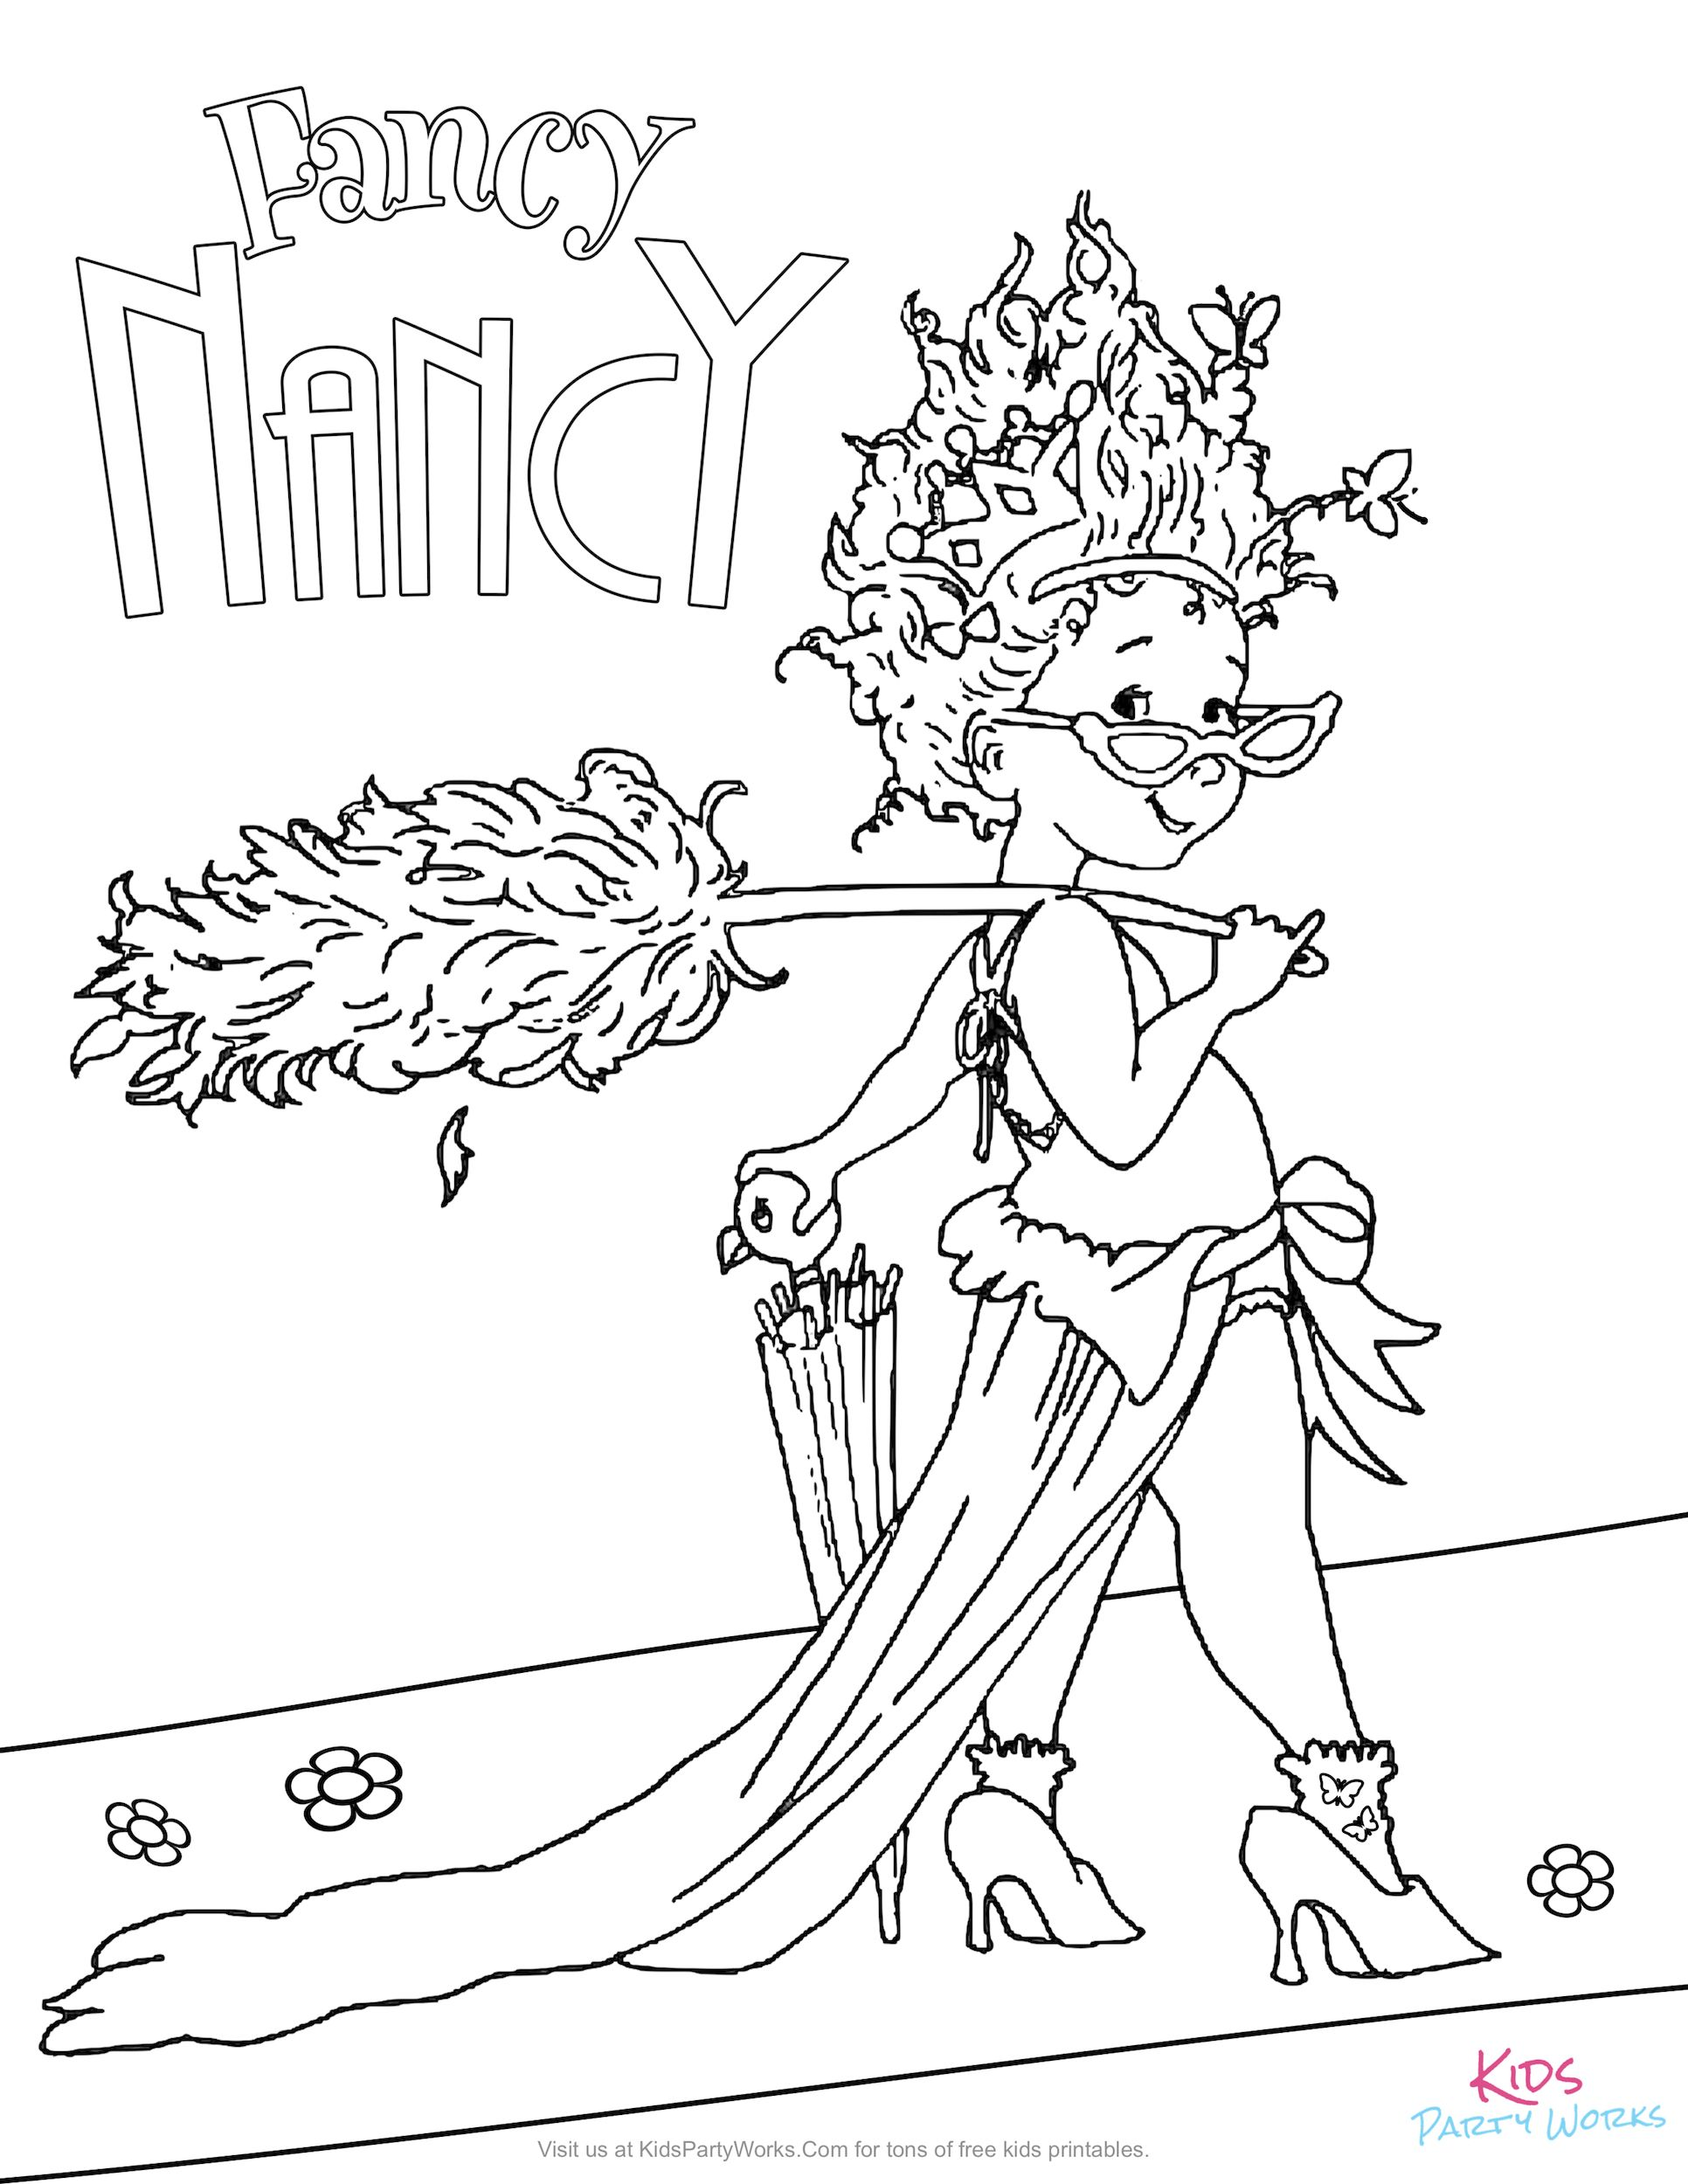 Have fun coloring this free Fancy Nancy coloring page for